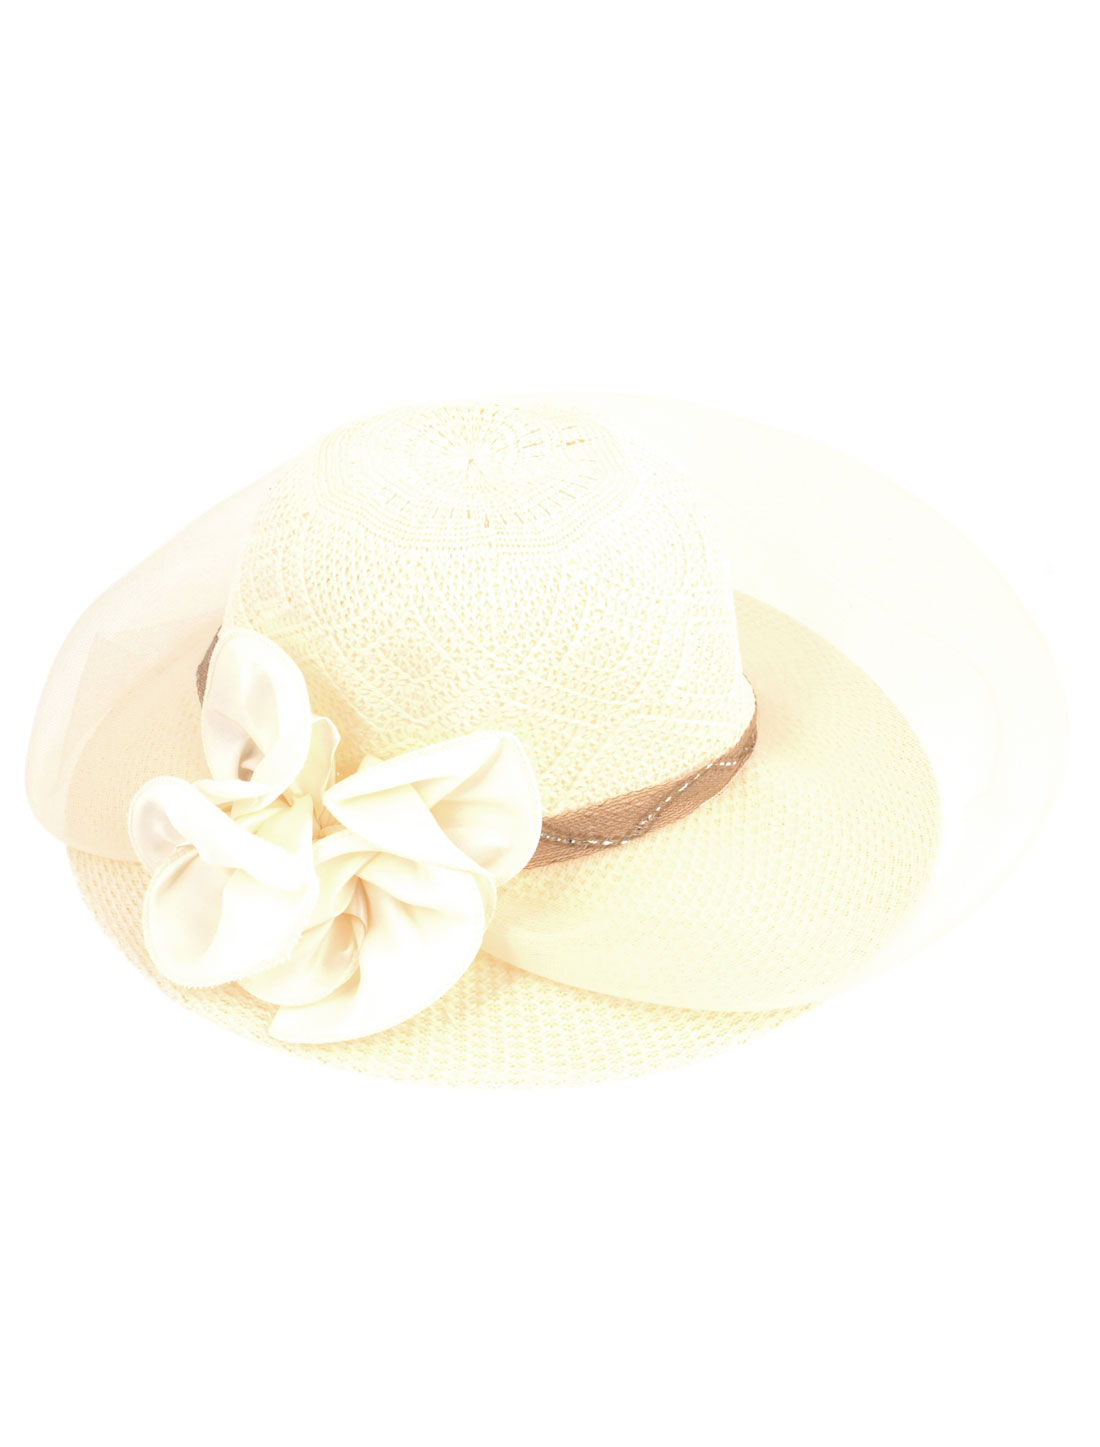 10cm Wide Brim Flower Decoration Mesh Cover Summer Beach Hat Cap Ivory for Lady